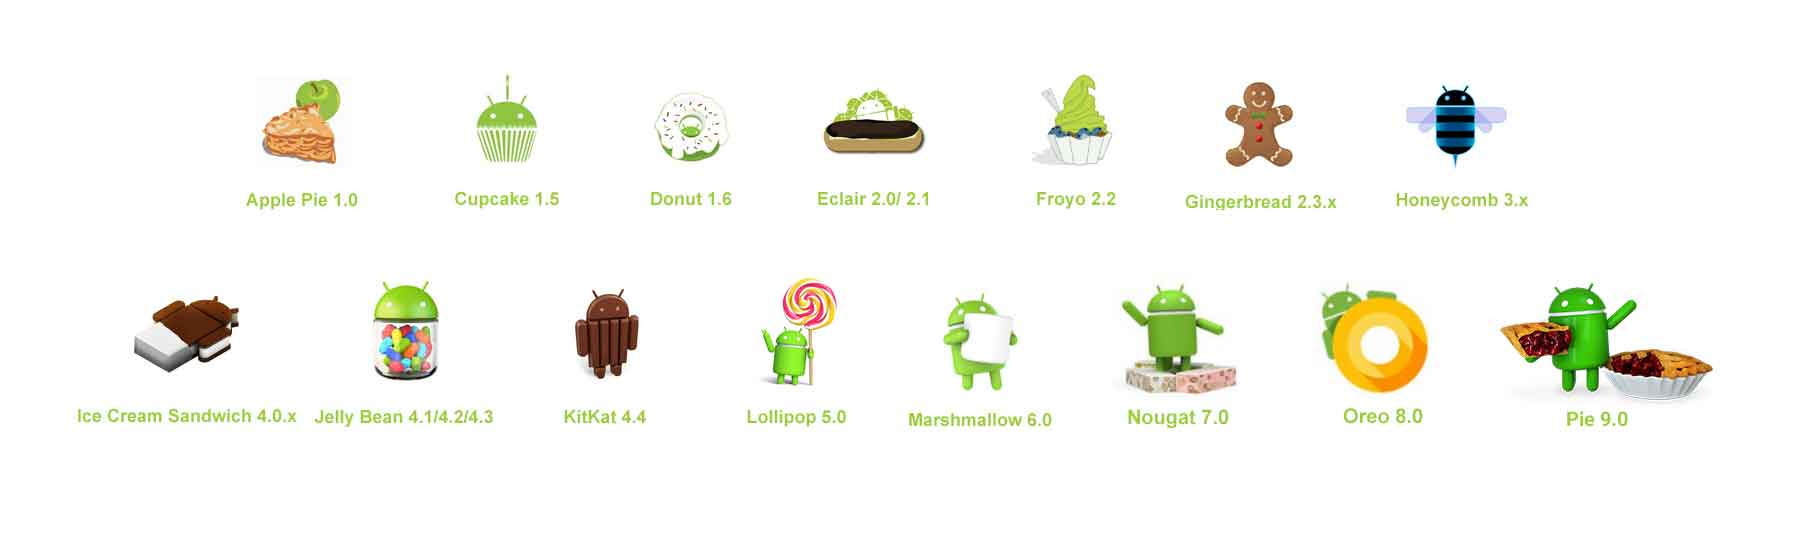 Evolution of Android OS (A Complete History from 1 0 to Pie)